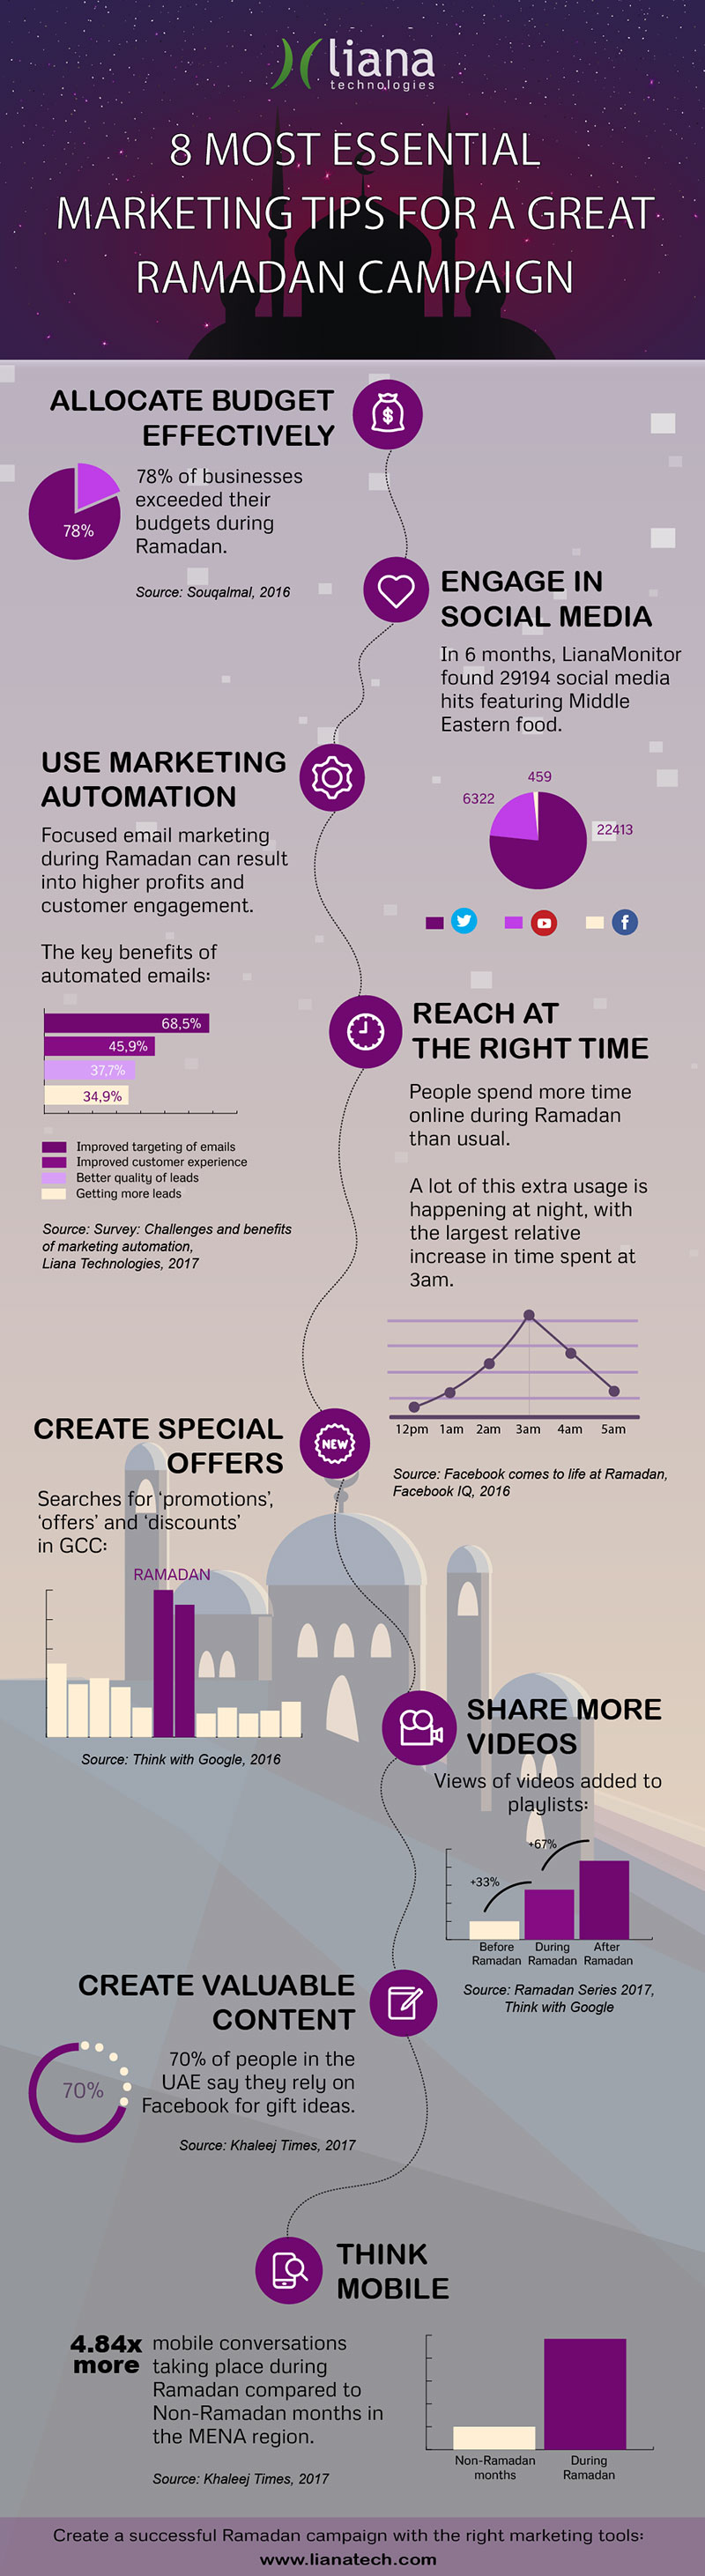 8 Digital Marketing Tips for a Great Ramadan Campaign [Infographic]